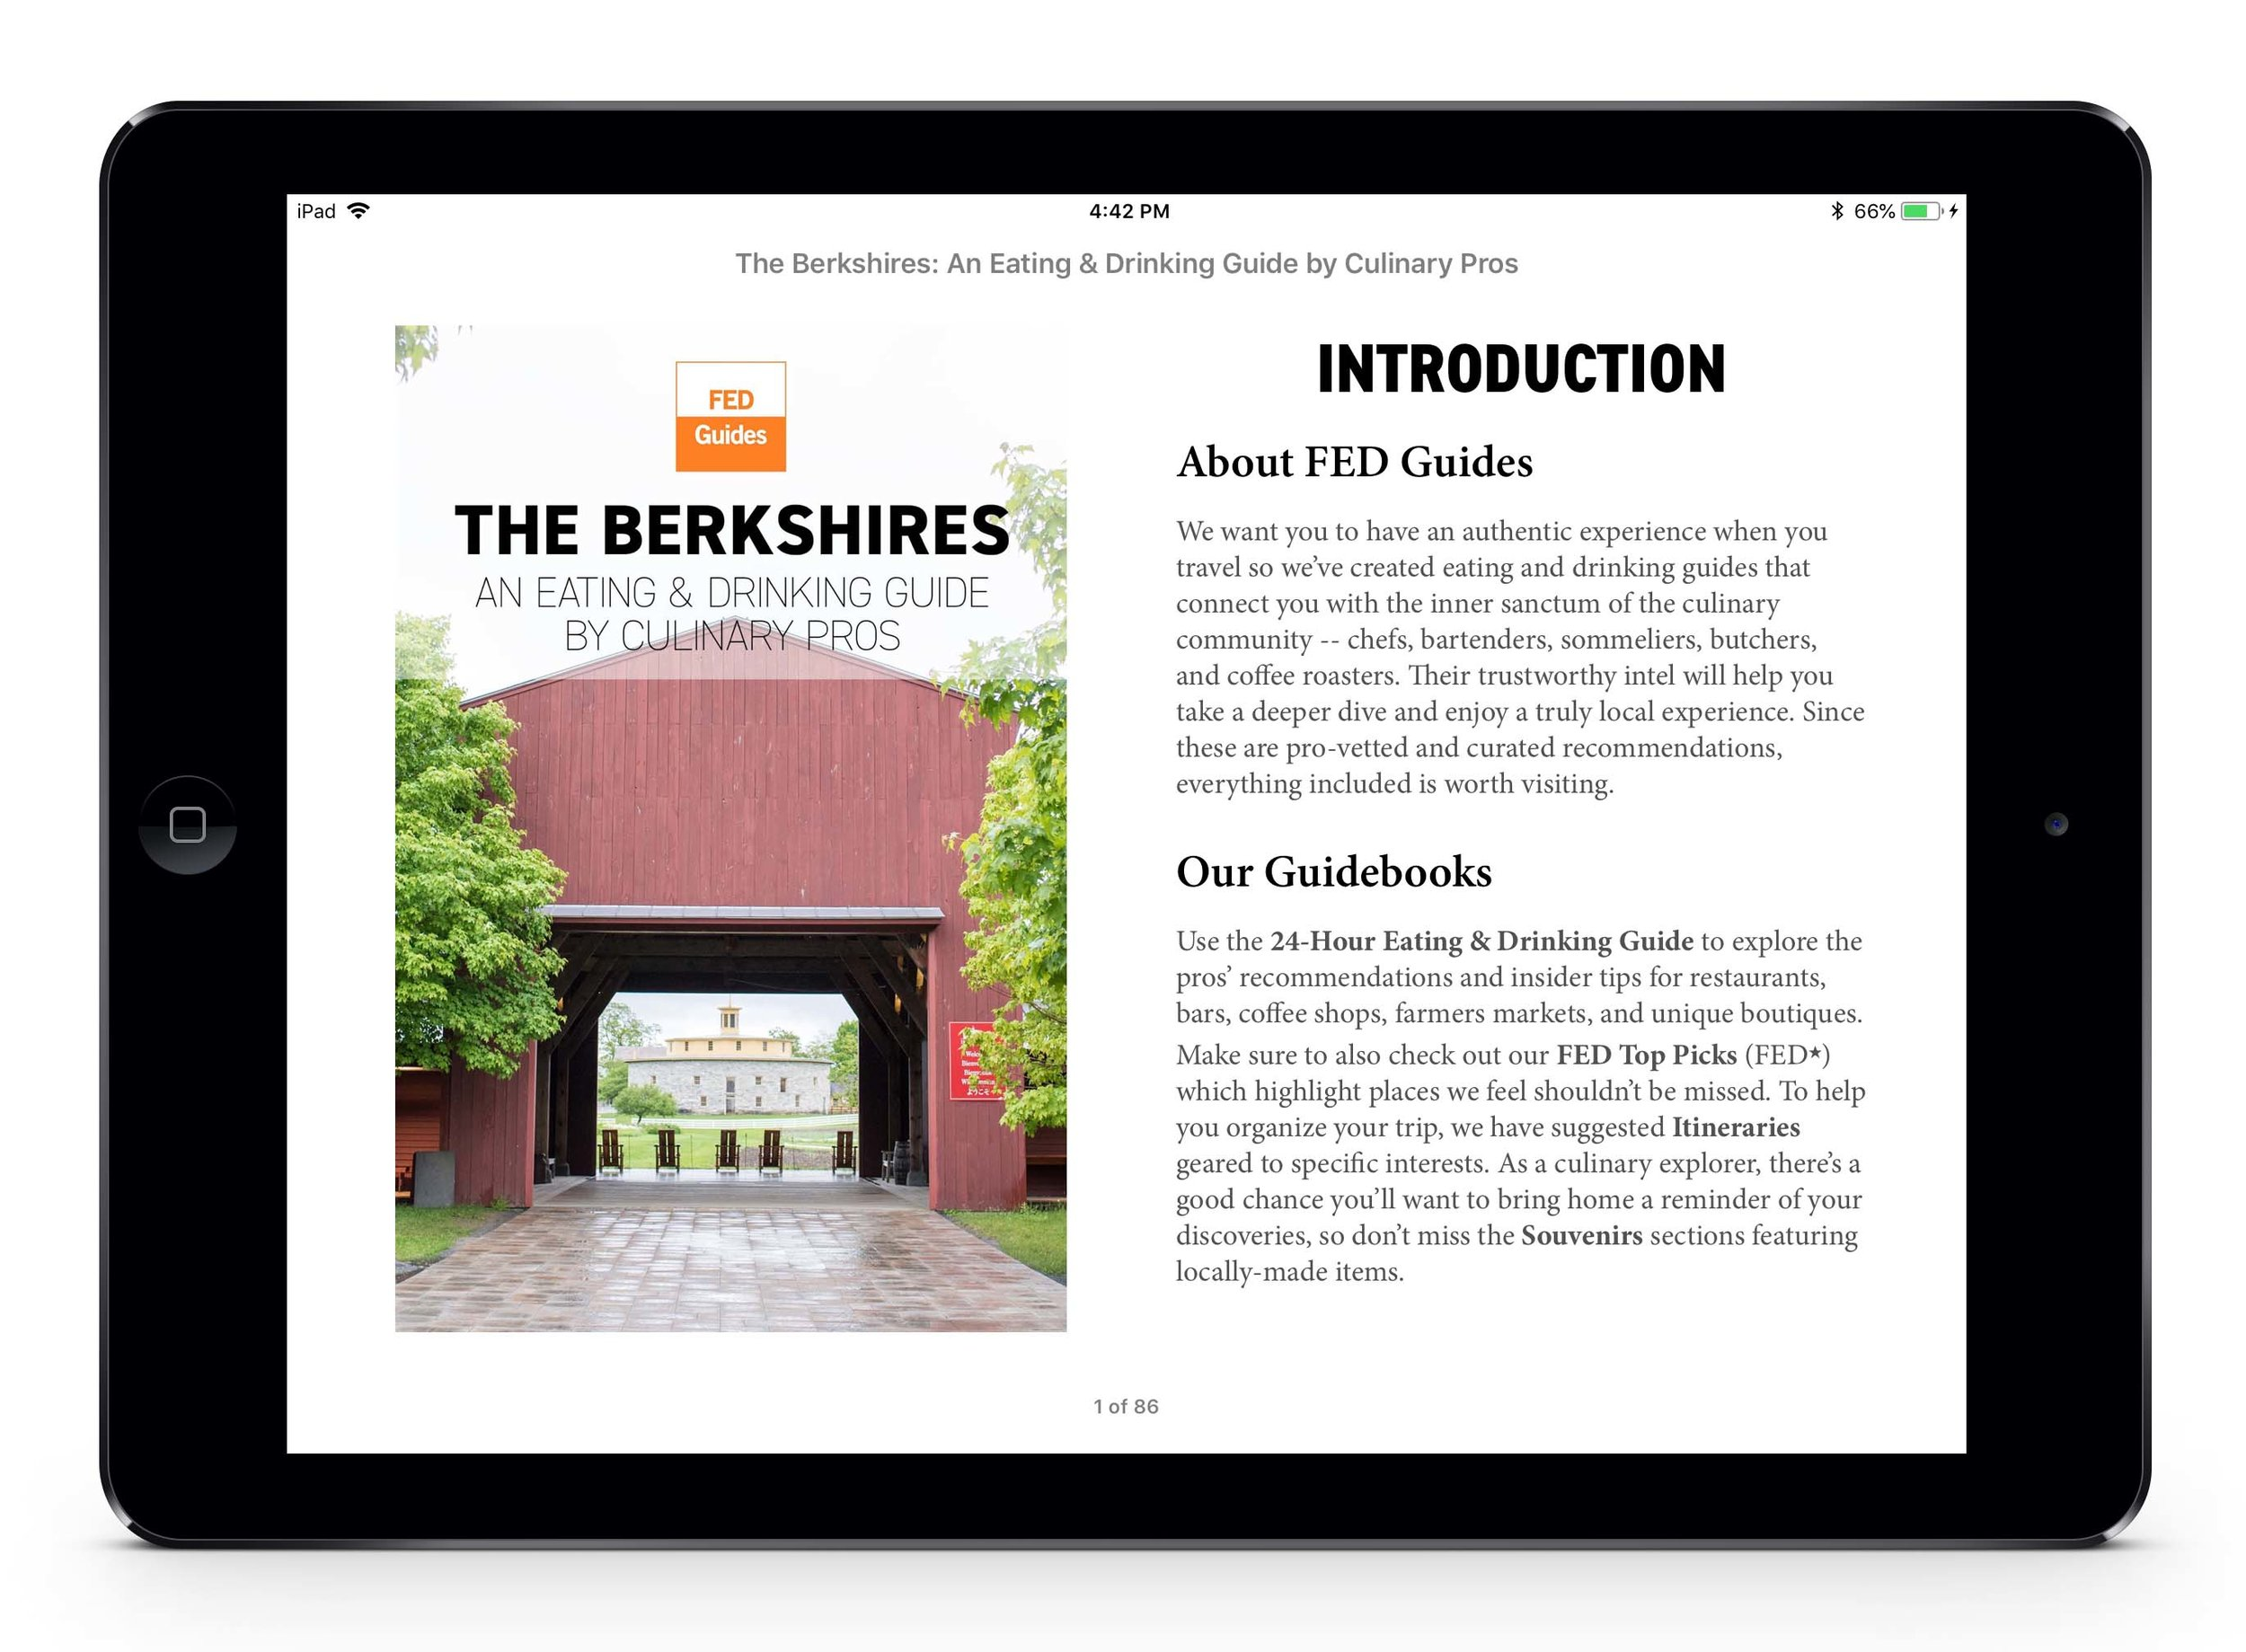 iPadAir_Berkshires_Screenshots_4.1.jpg